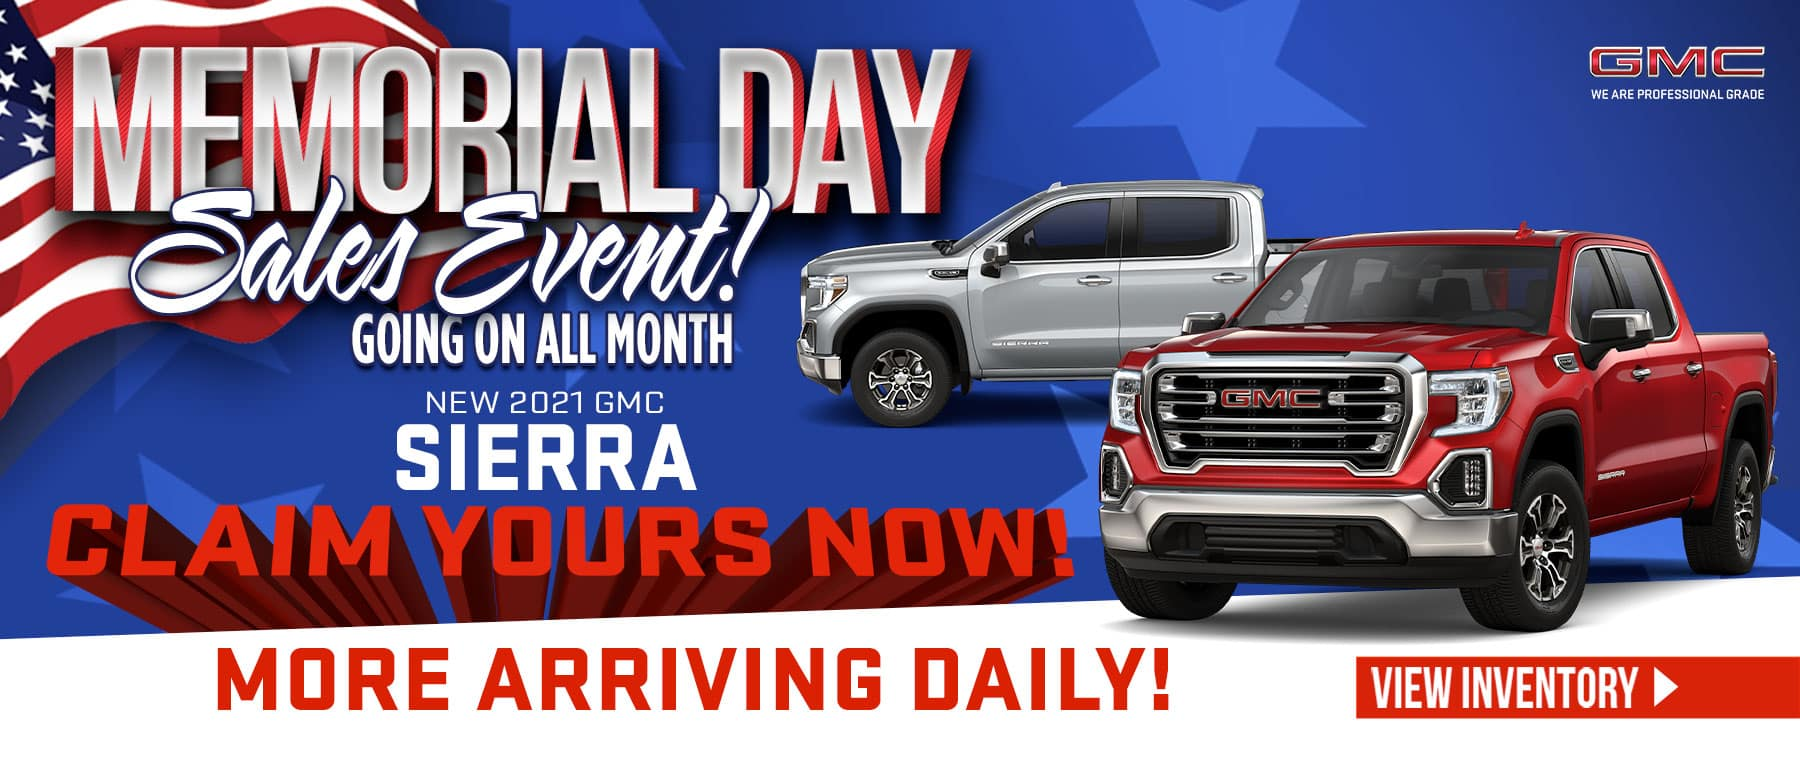 New 2021 GMC Sierra - More arriving daily Claim yours now